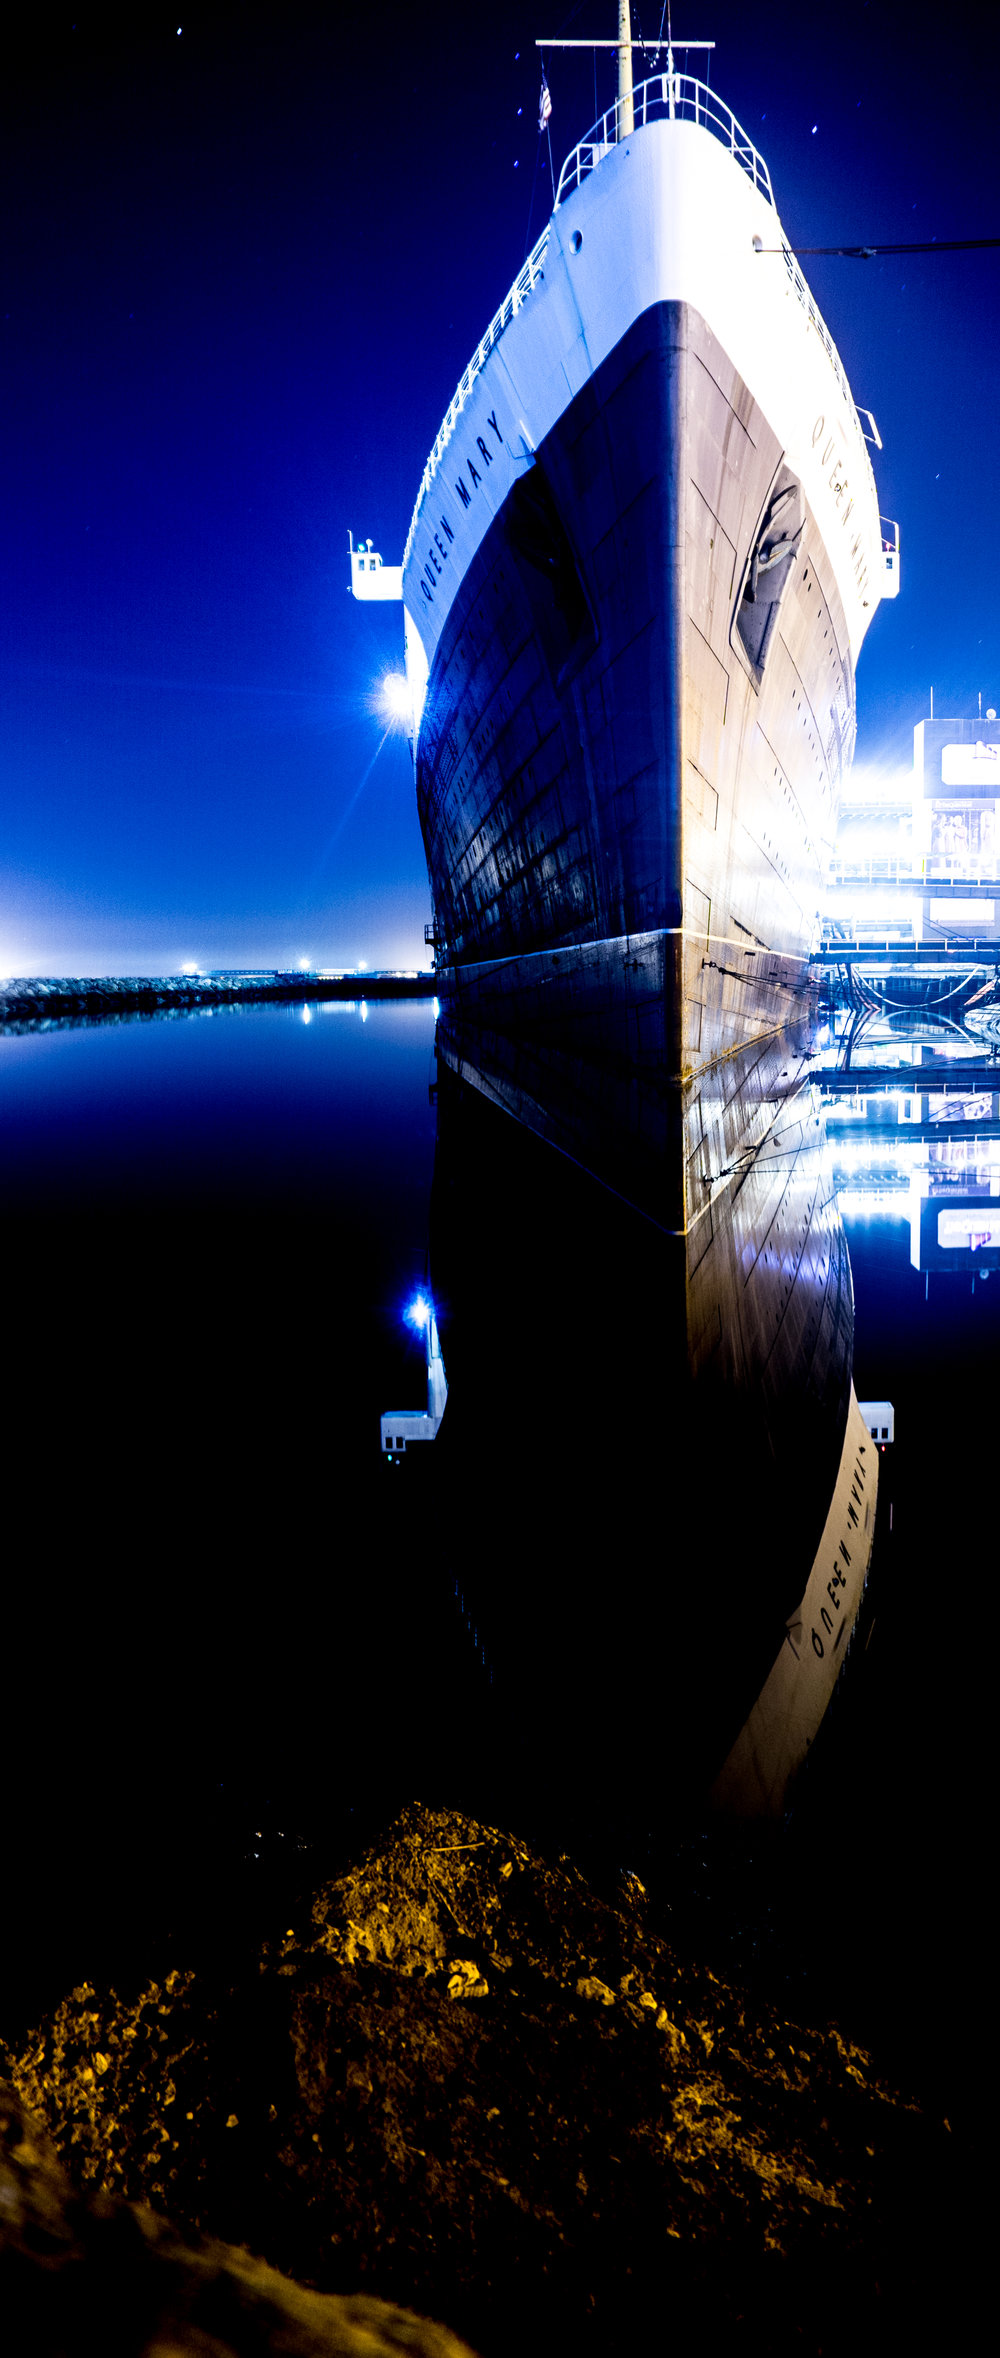 queen mary night sky and reflections.jpg